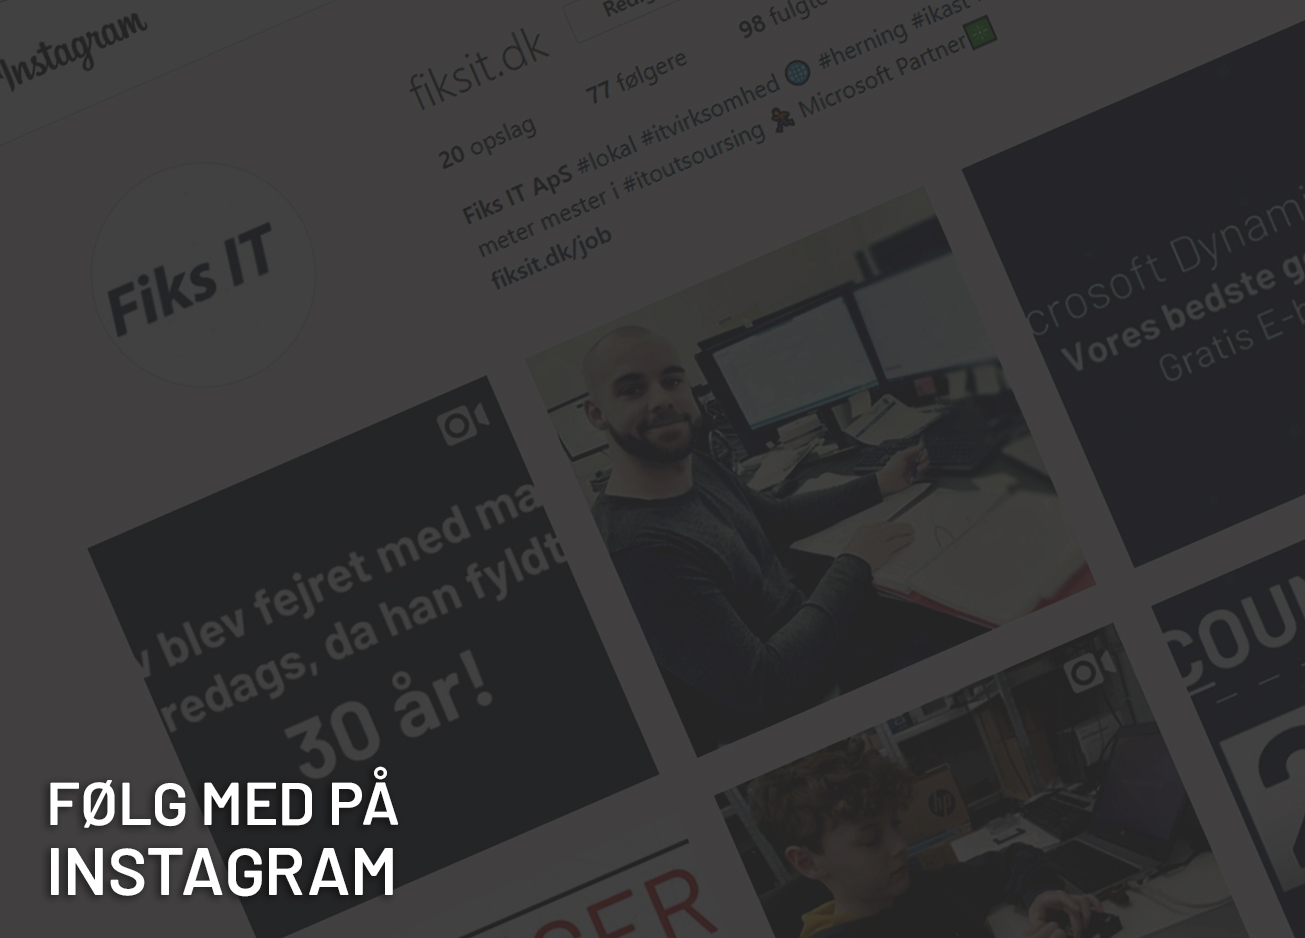 Følg Fiks IT på Instagram